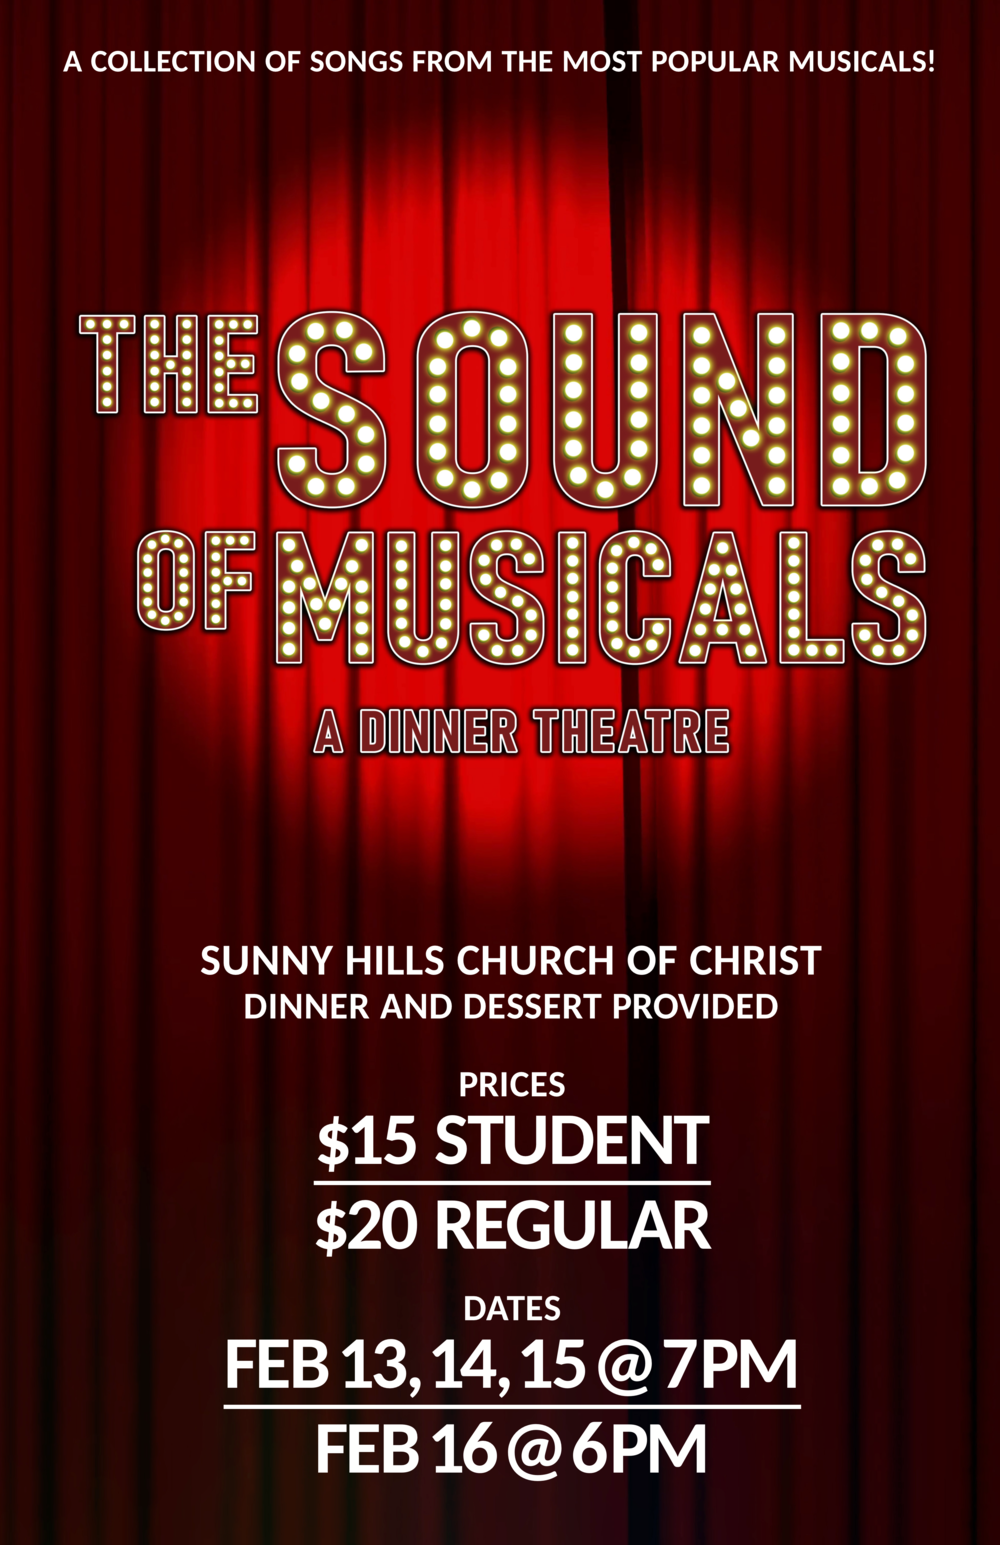 The Sound of Musicals - 11x17.png